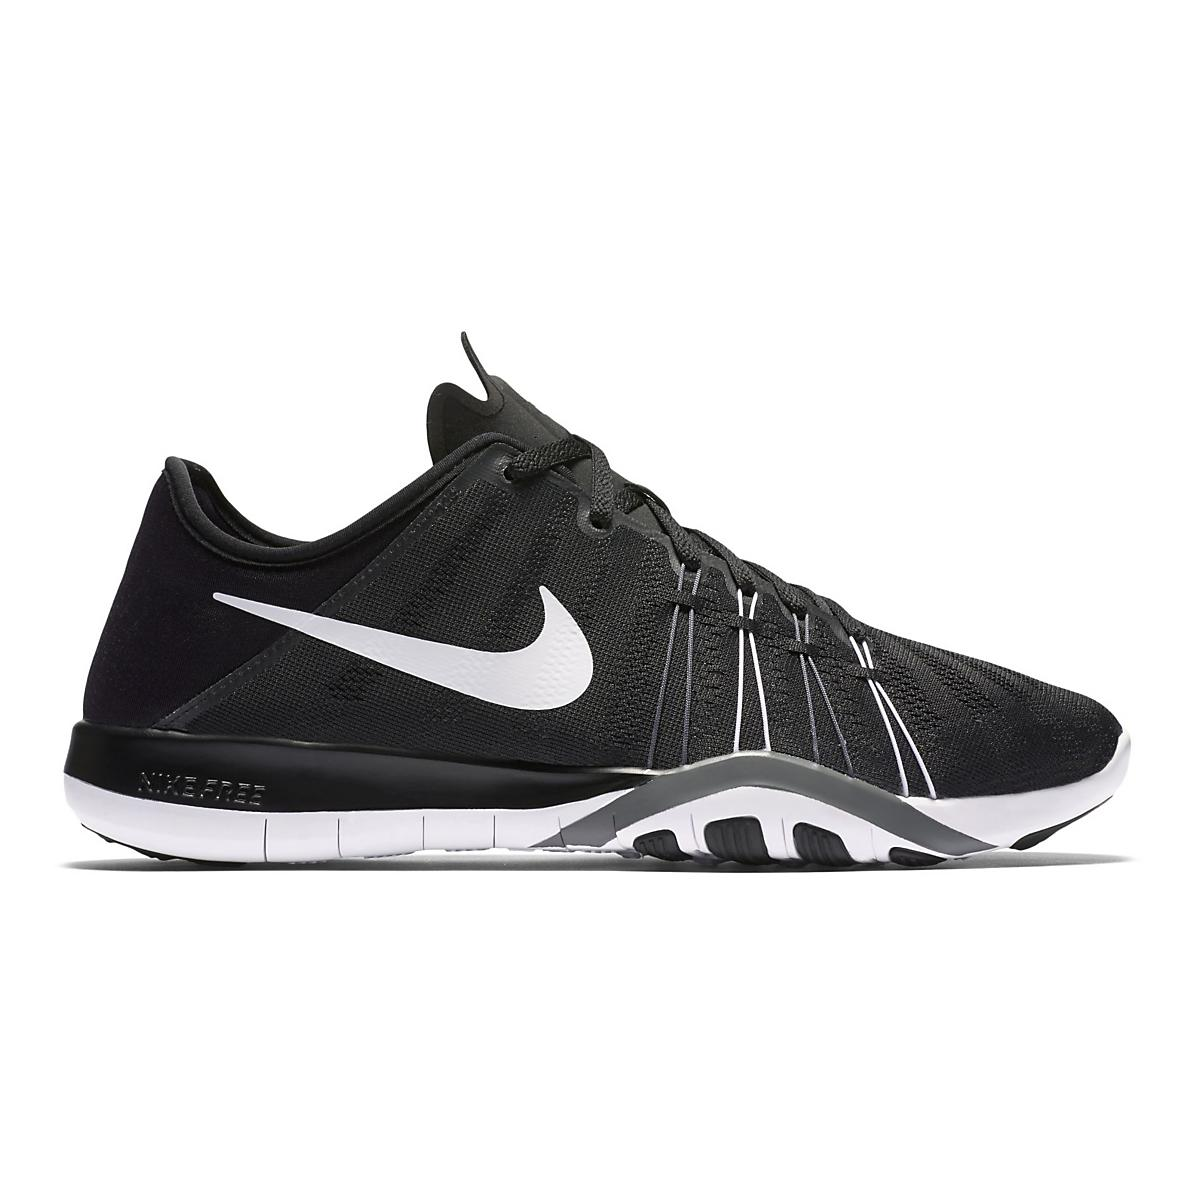 c5a15a7a6c57e Womens Nike Free TR 6 Cross Training Shoe at Road Runner Sports